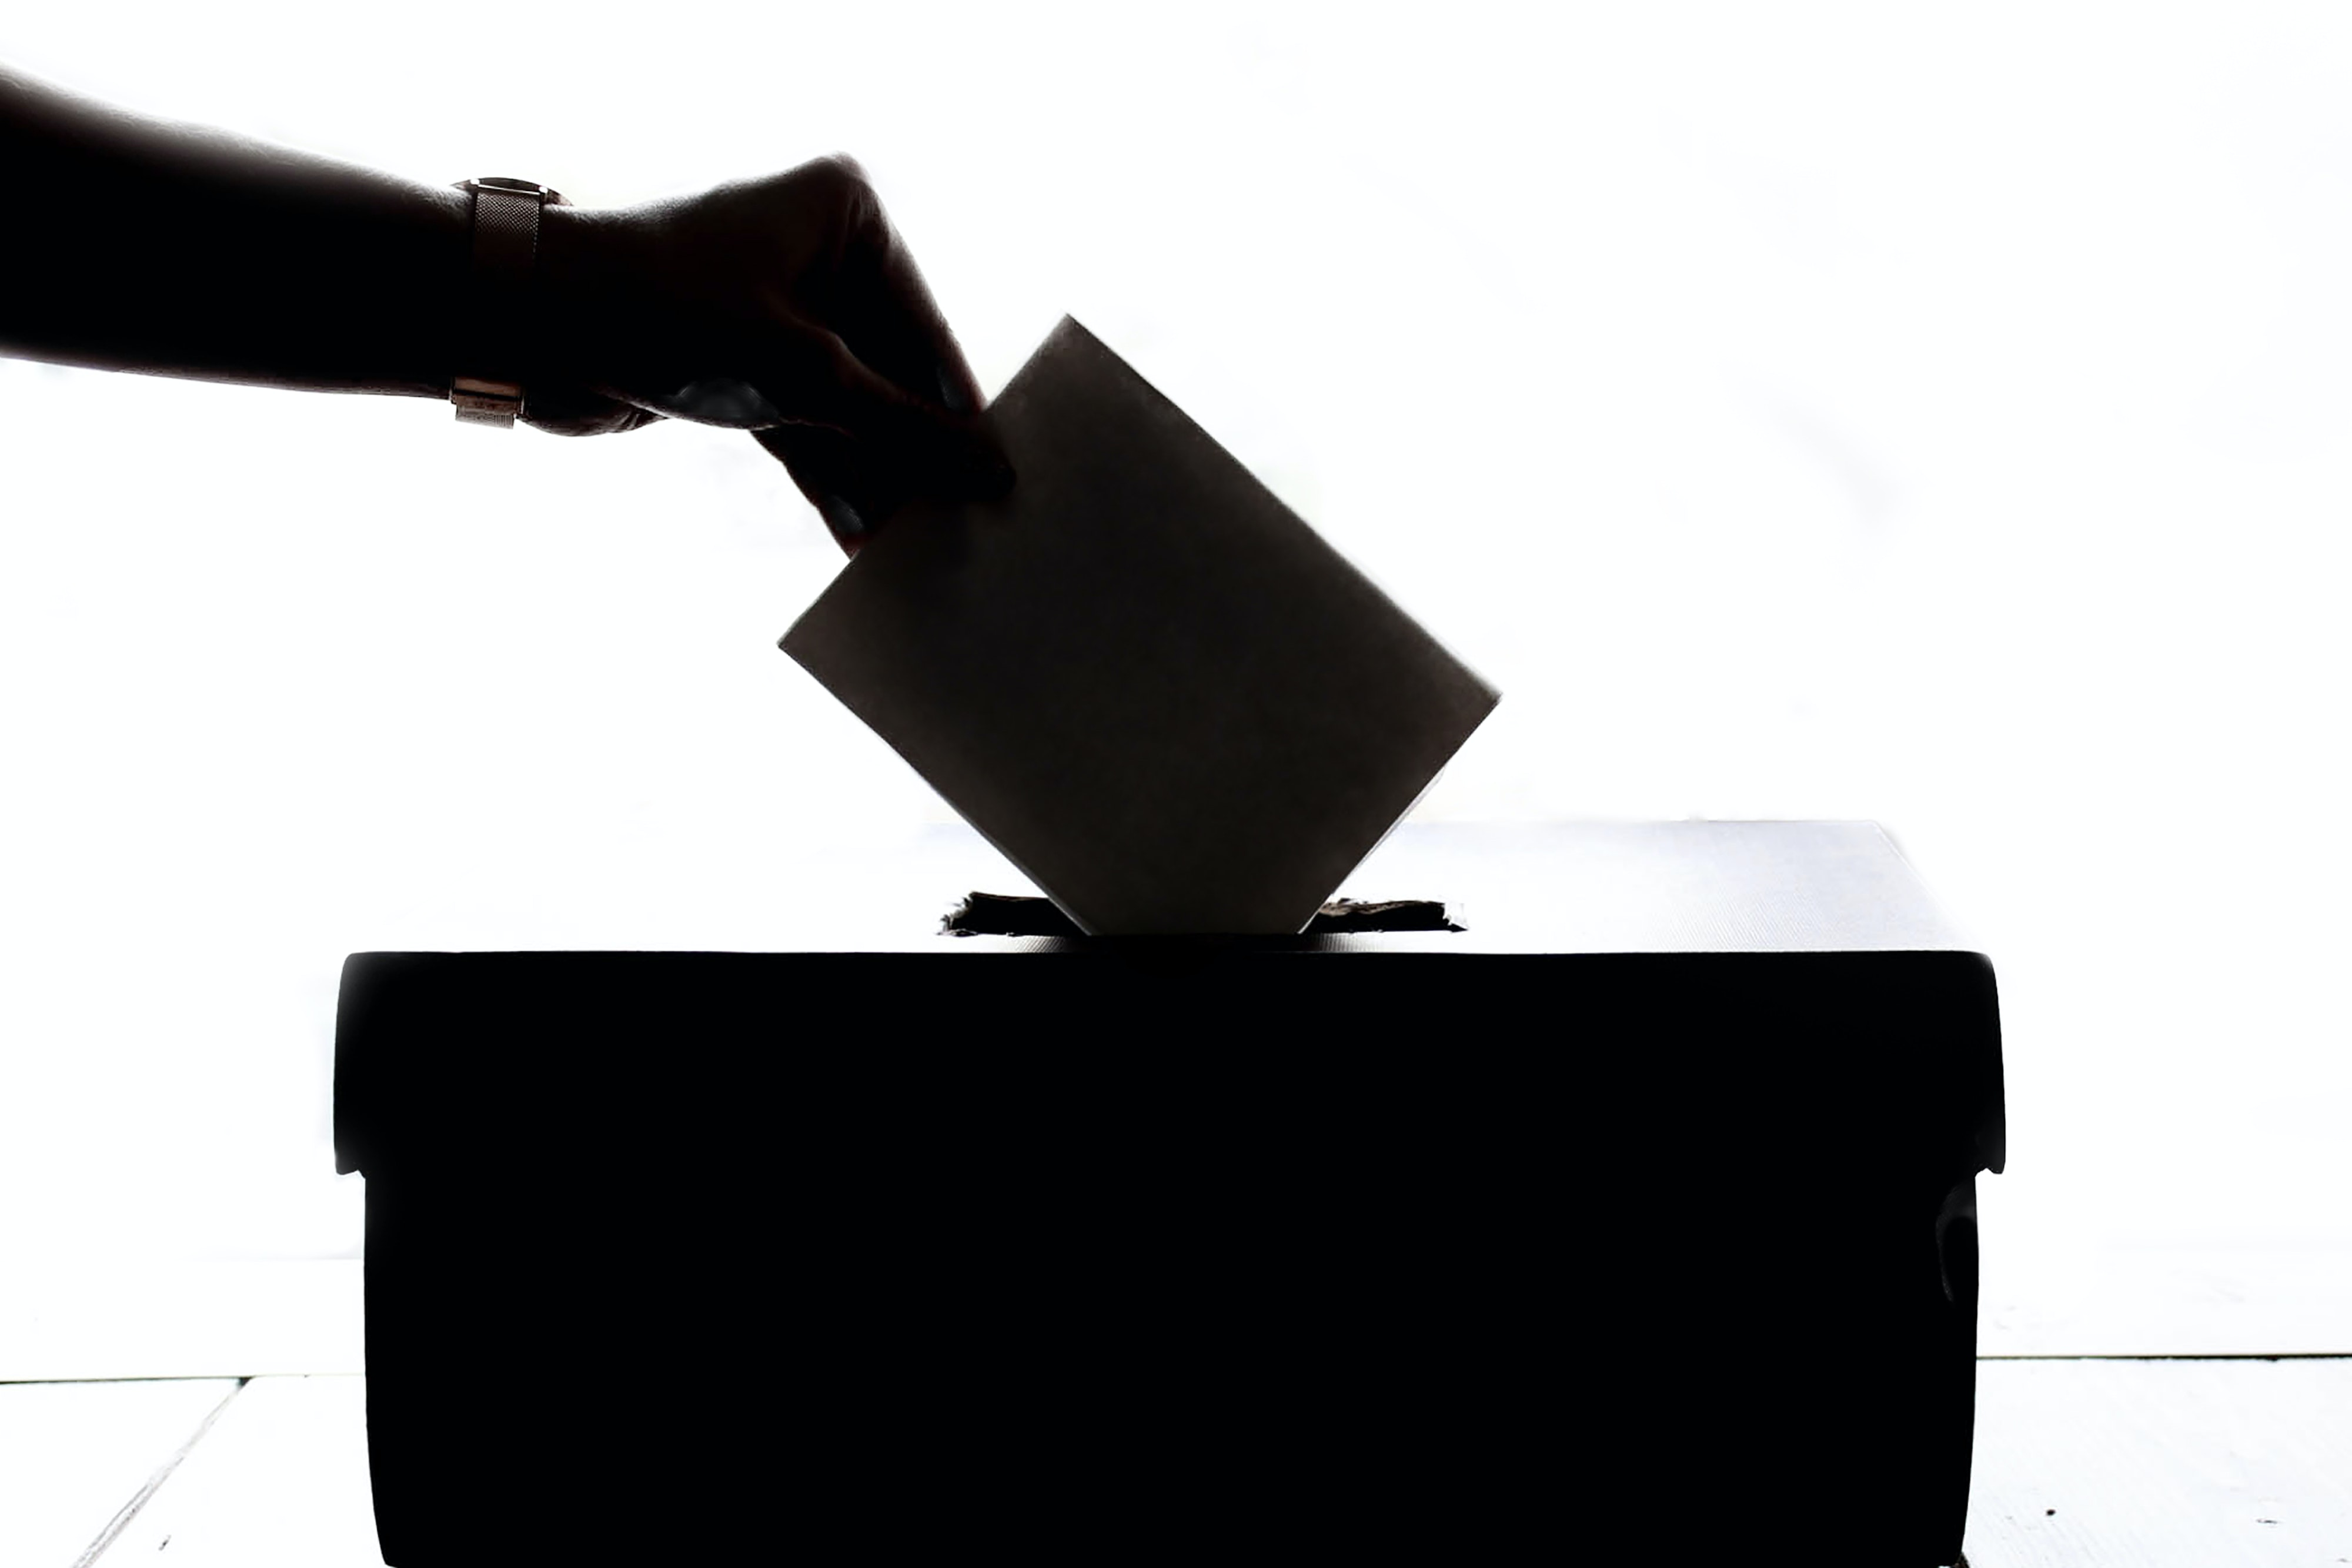 Image of a hand putting a vote in a box.